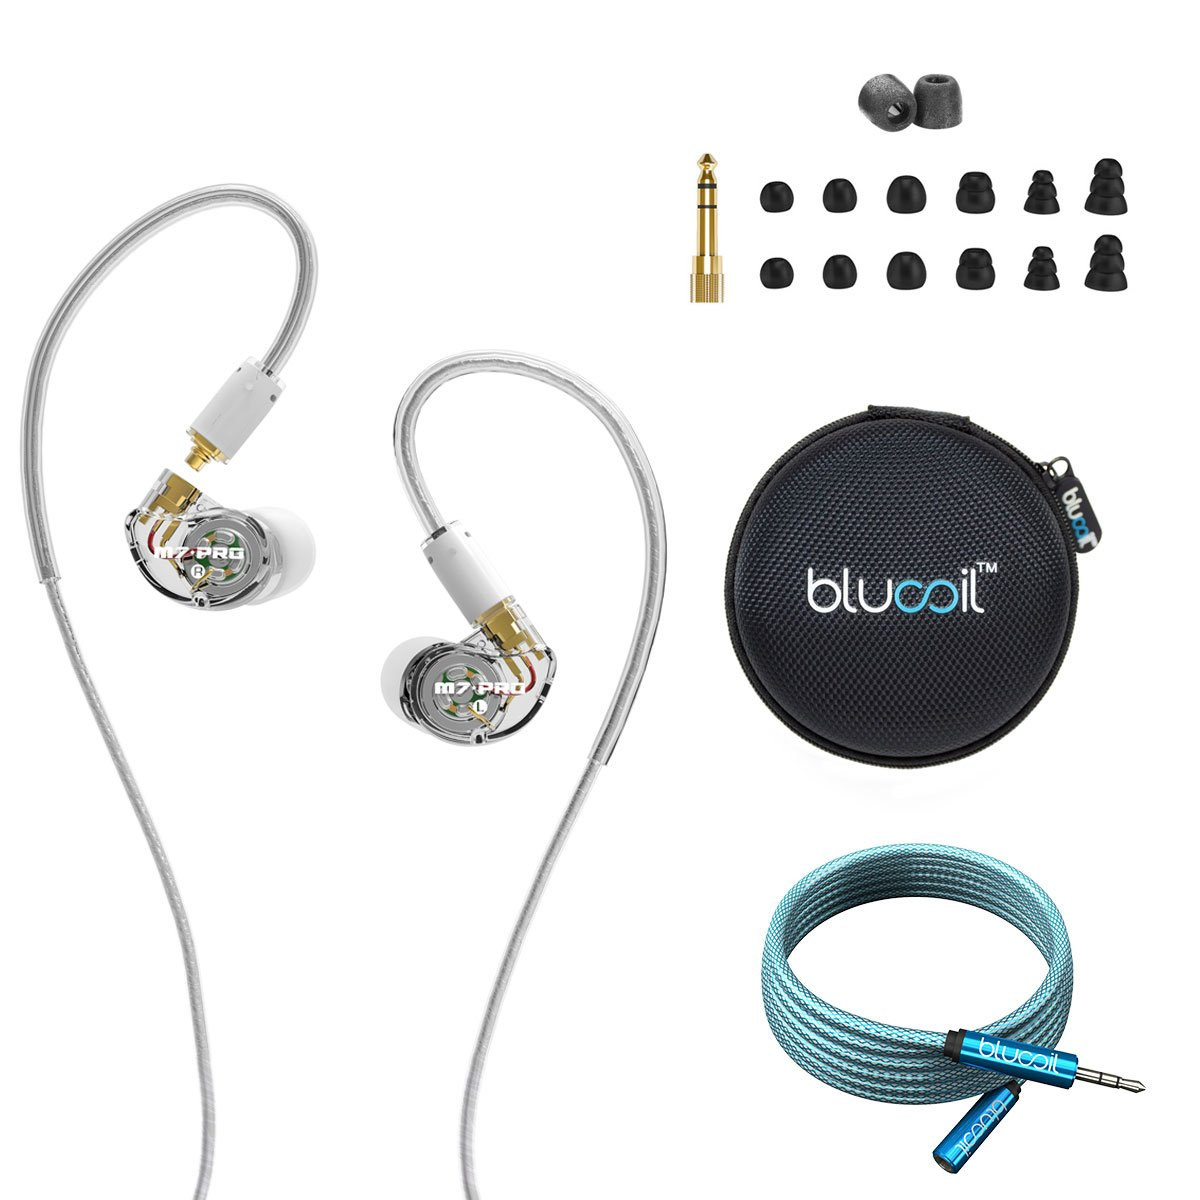 MEE audio M7 PRO Hybrid Dual-Driver Musician's In Ear Monitors -INCLUDES- Blucoil Audio Premium 3.5mm Audio Extension Cable (6-Feet/1.82 Meters) AND Earphone Hard Case